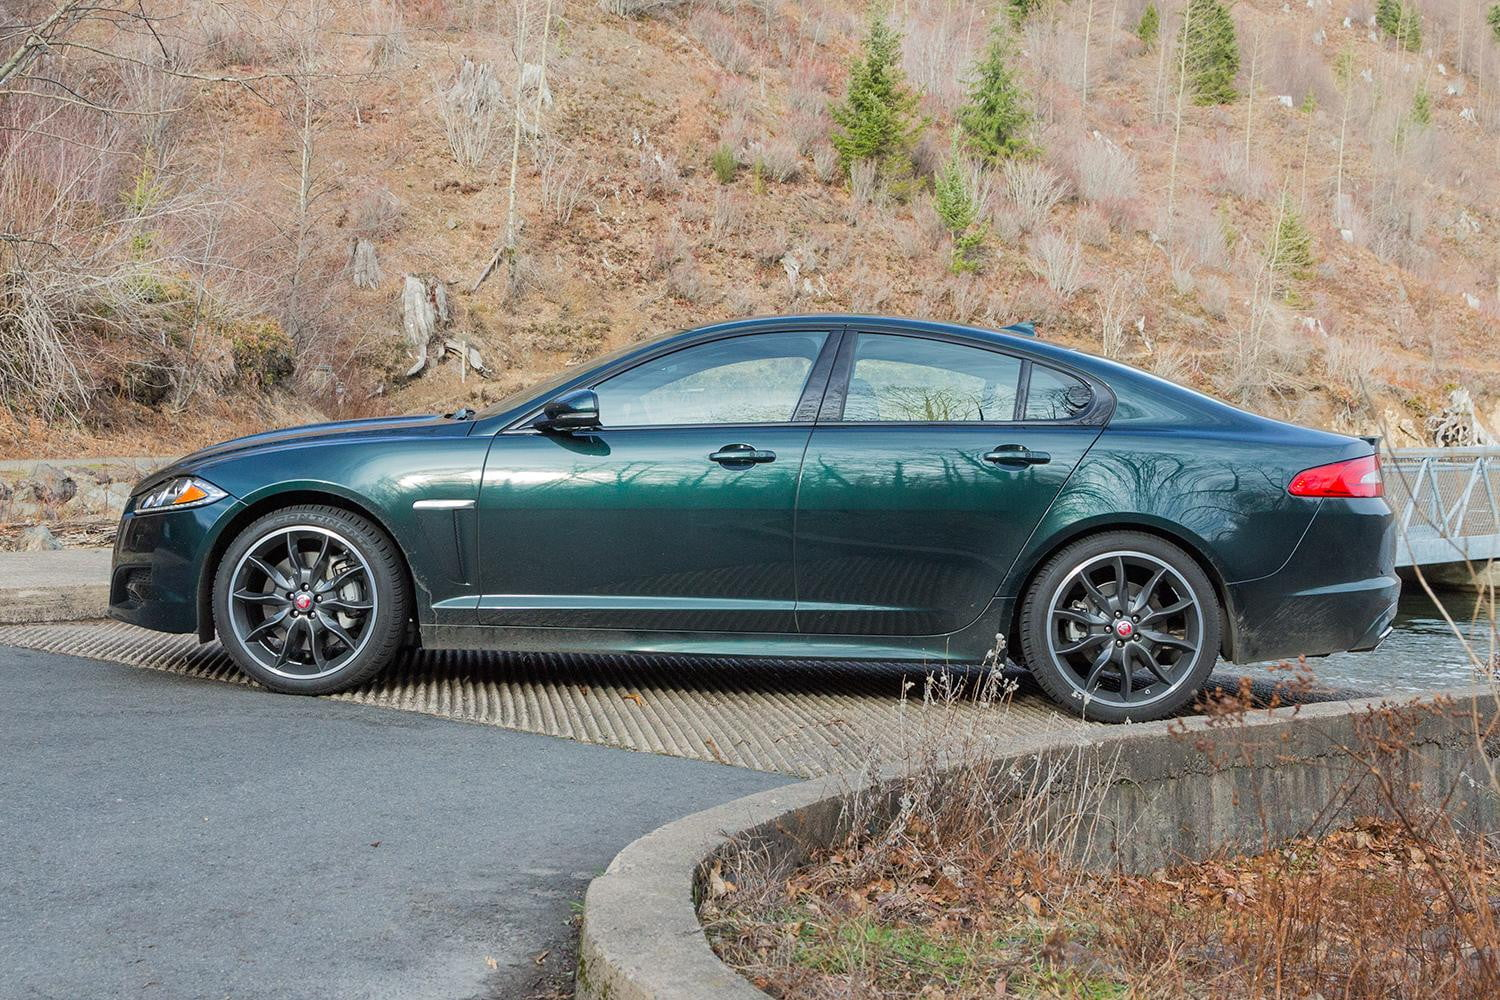 for c sport sale ny near neck jaguar great xf htm used l main stock